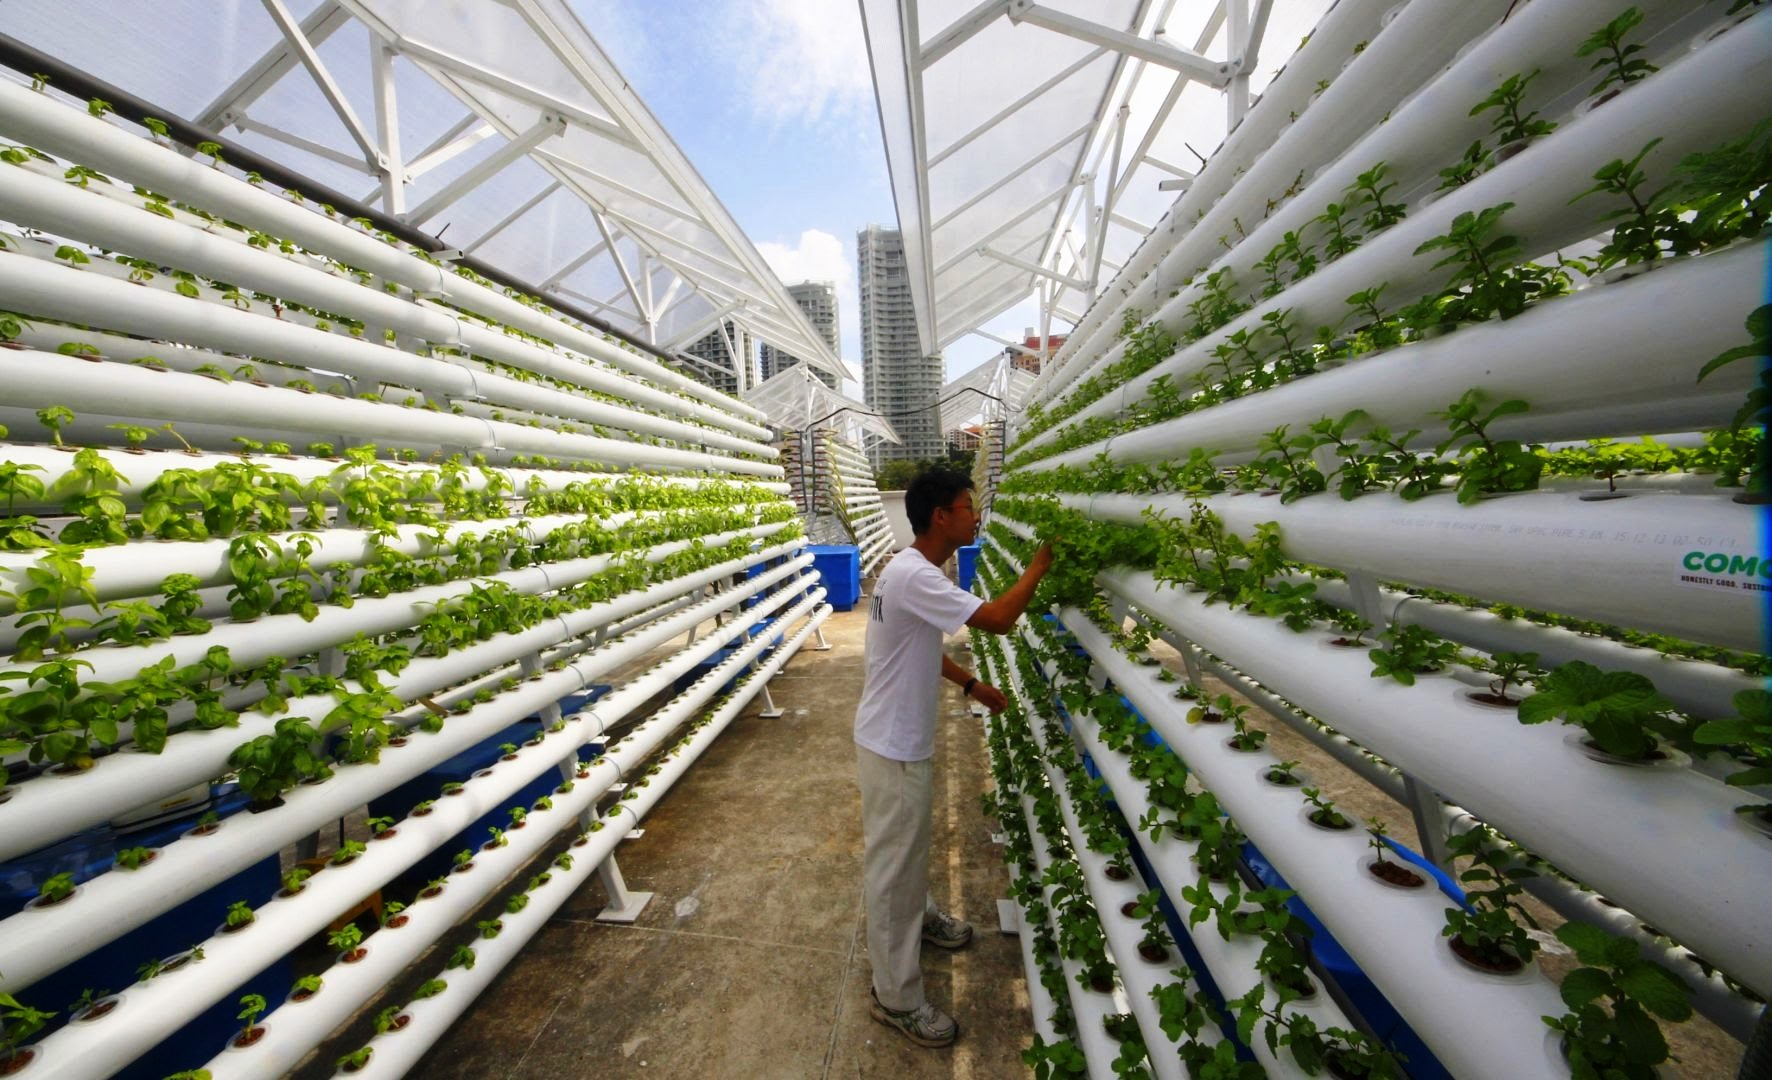 উল্লম্ব কৃষি (Vertical Farming)